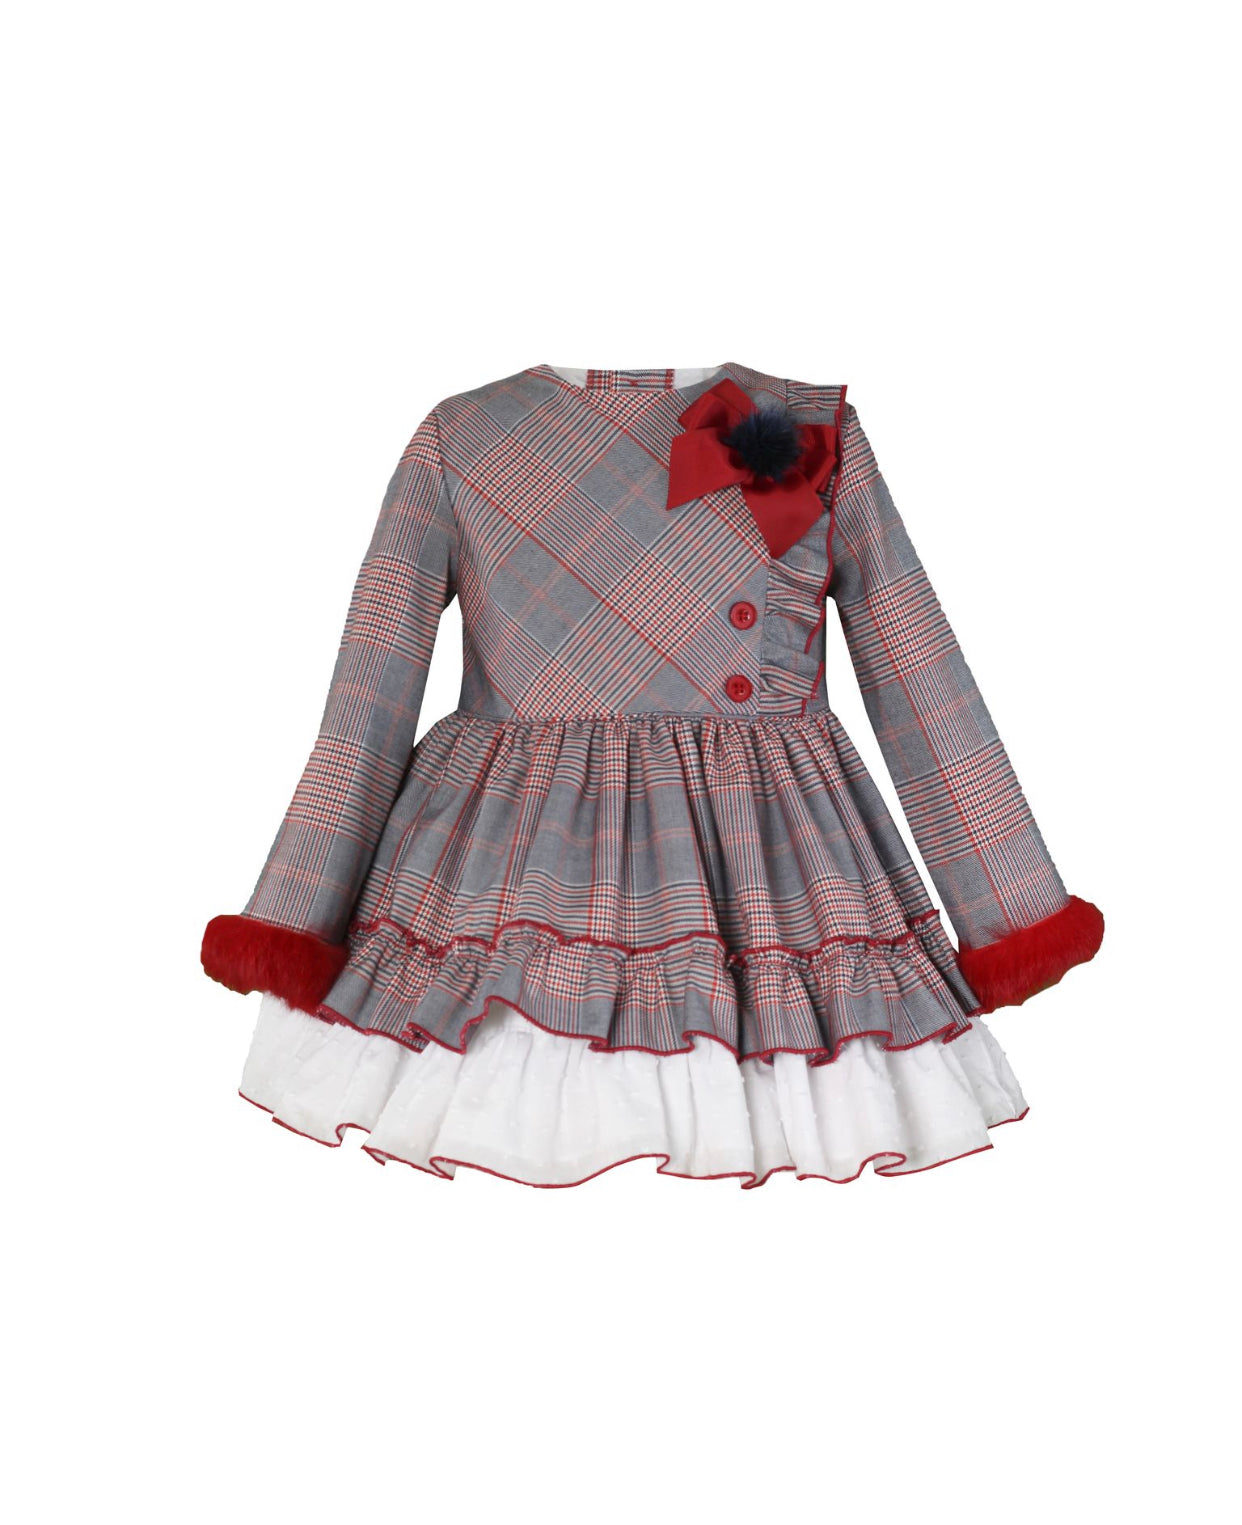 Miranda Grey/Red Check Puffball dress.